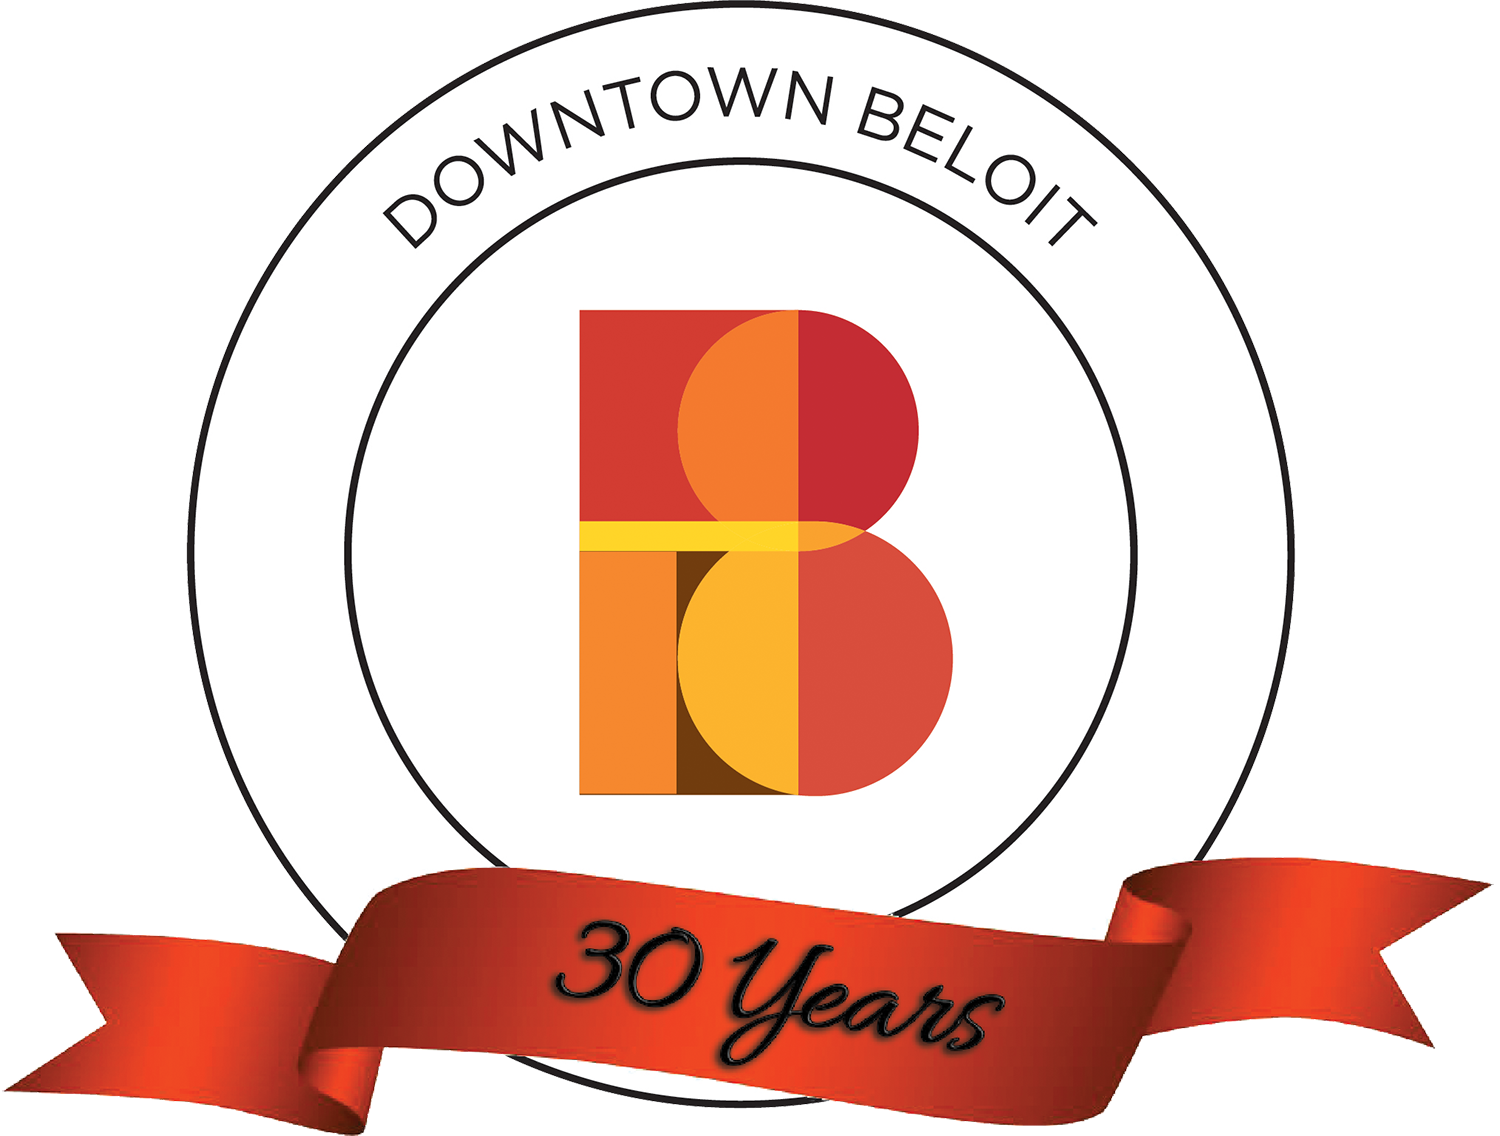 Downtown Beloit Association